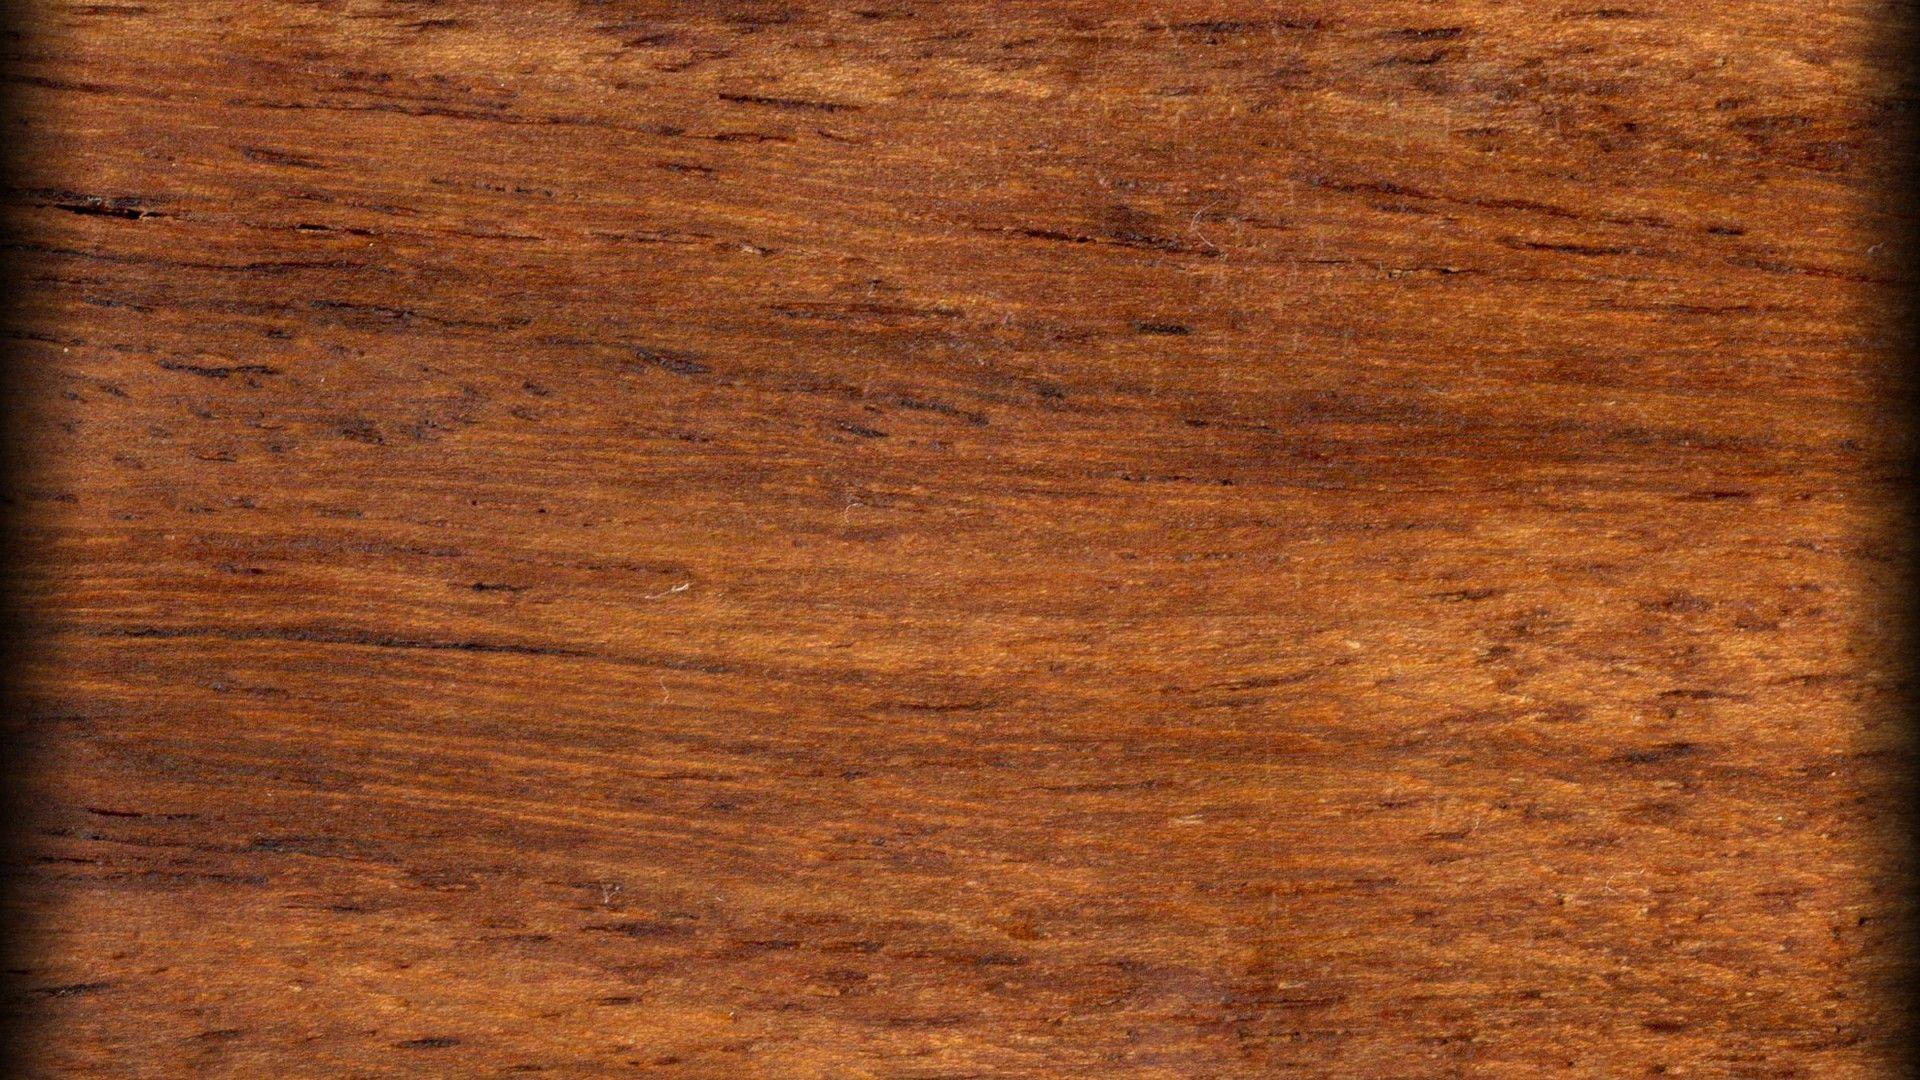 Wood wallpapers 1080p wallpaper cave download 1920x1080 full hd 1080p 1080i wood background texture voltagebd Choice Image